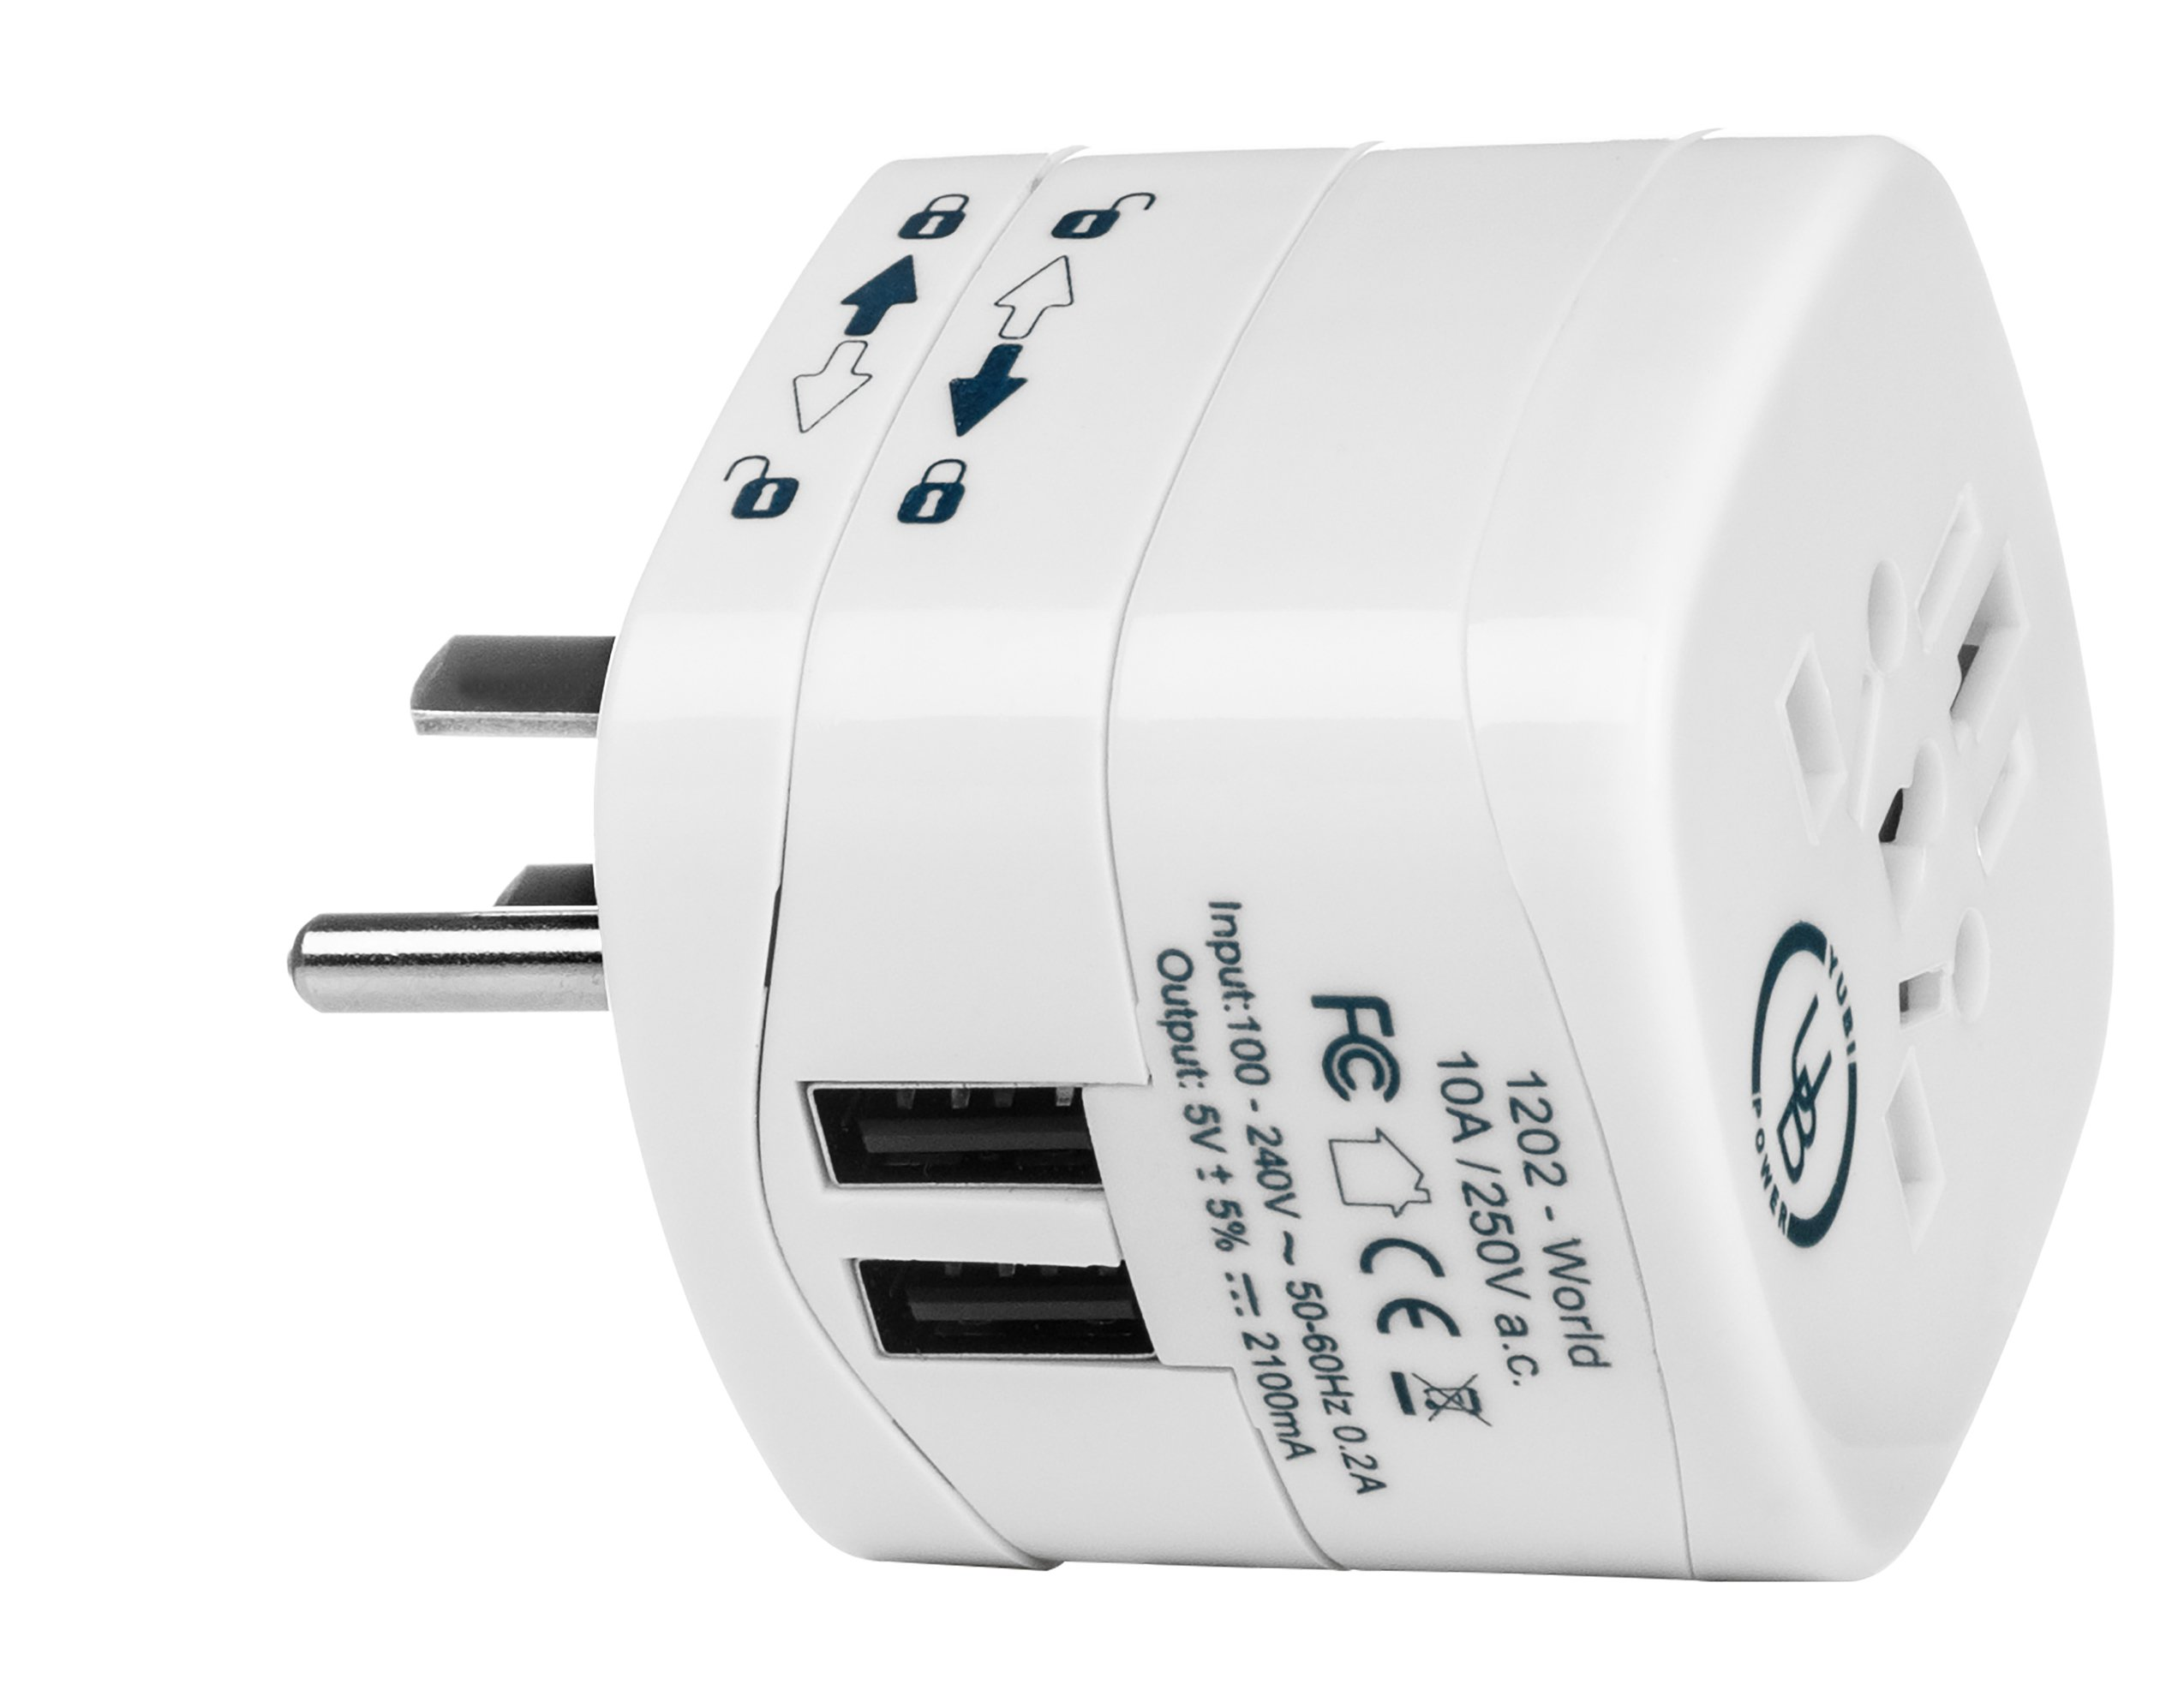 Yubi Power Universal Travel Plug Adapter with Dual USB Ports - Grounded Plug Type B for USA, Brazil, Canada, Mexico, Japan, North and South American Countries